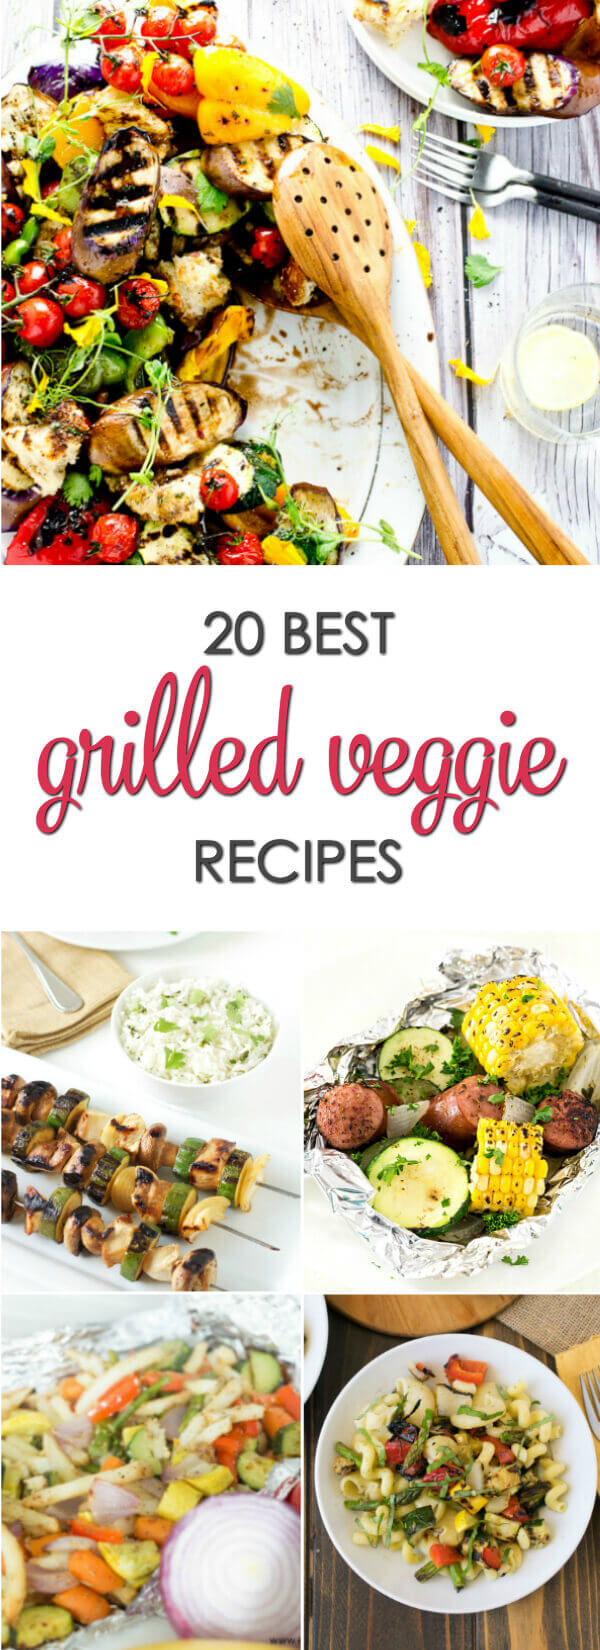 20 of the best grilled vegetable recipes that you and those picky eaters will love.